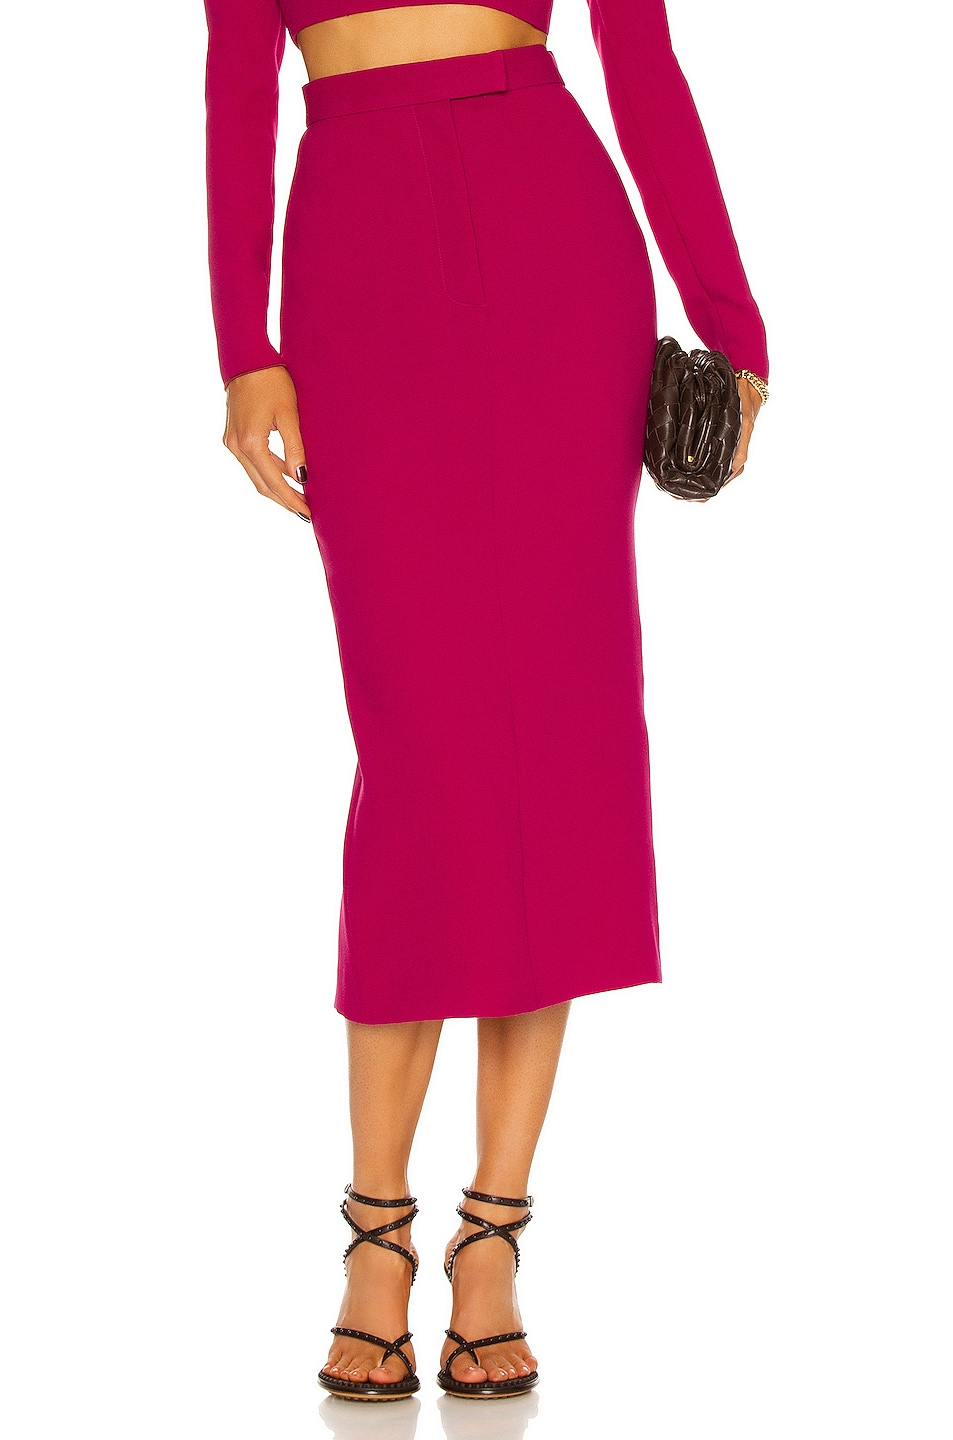 Image 1 of Alex Perry Delany Skirt in Raspberry